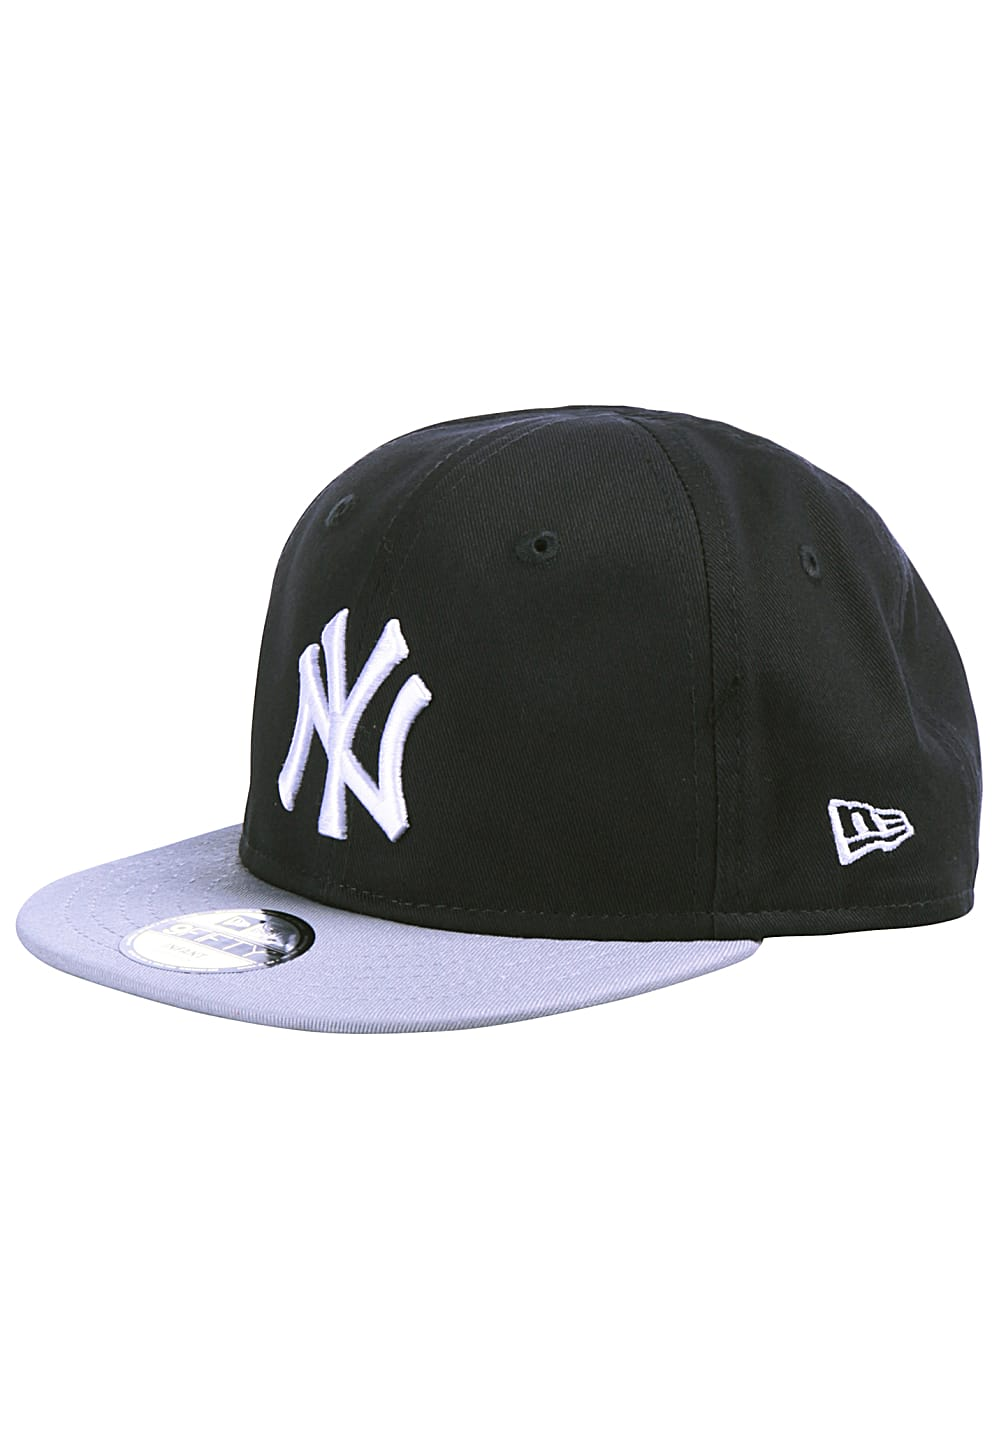 NEW Era Jr My First 950 New York Yankees - Snapback Cap - Blue ... ef0a7137cf9